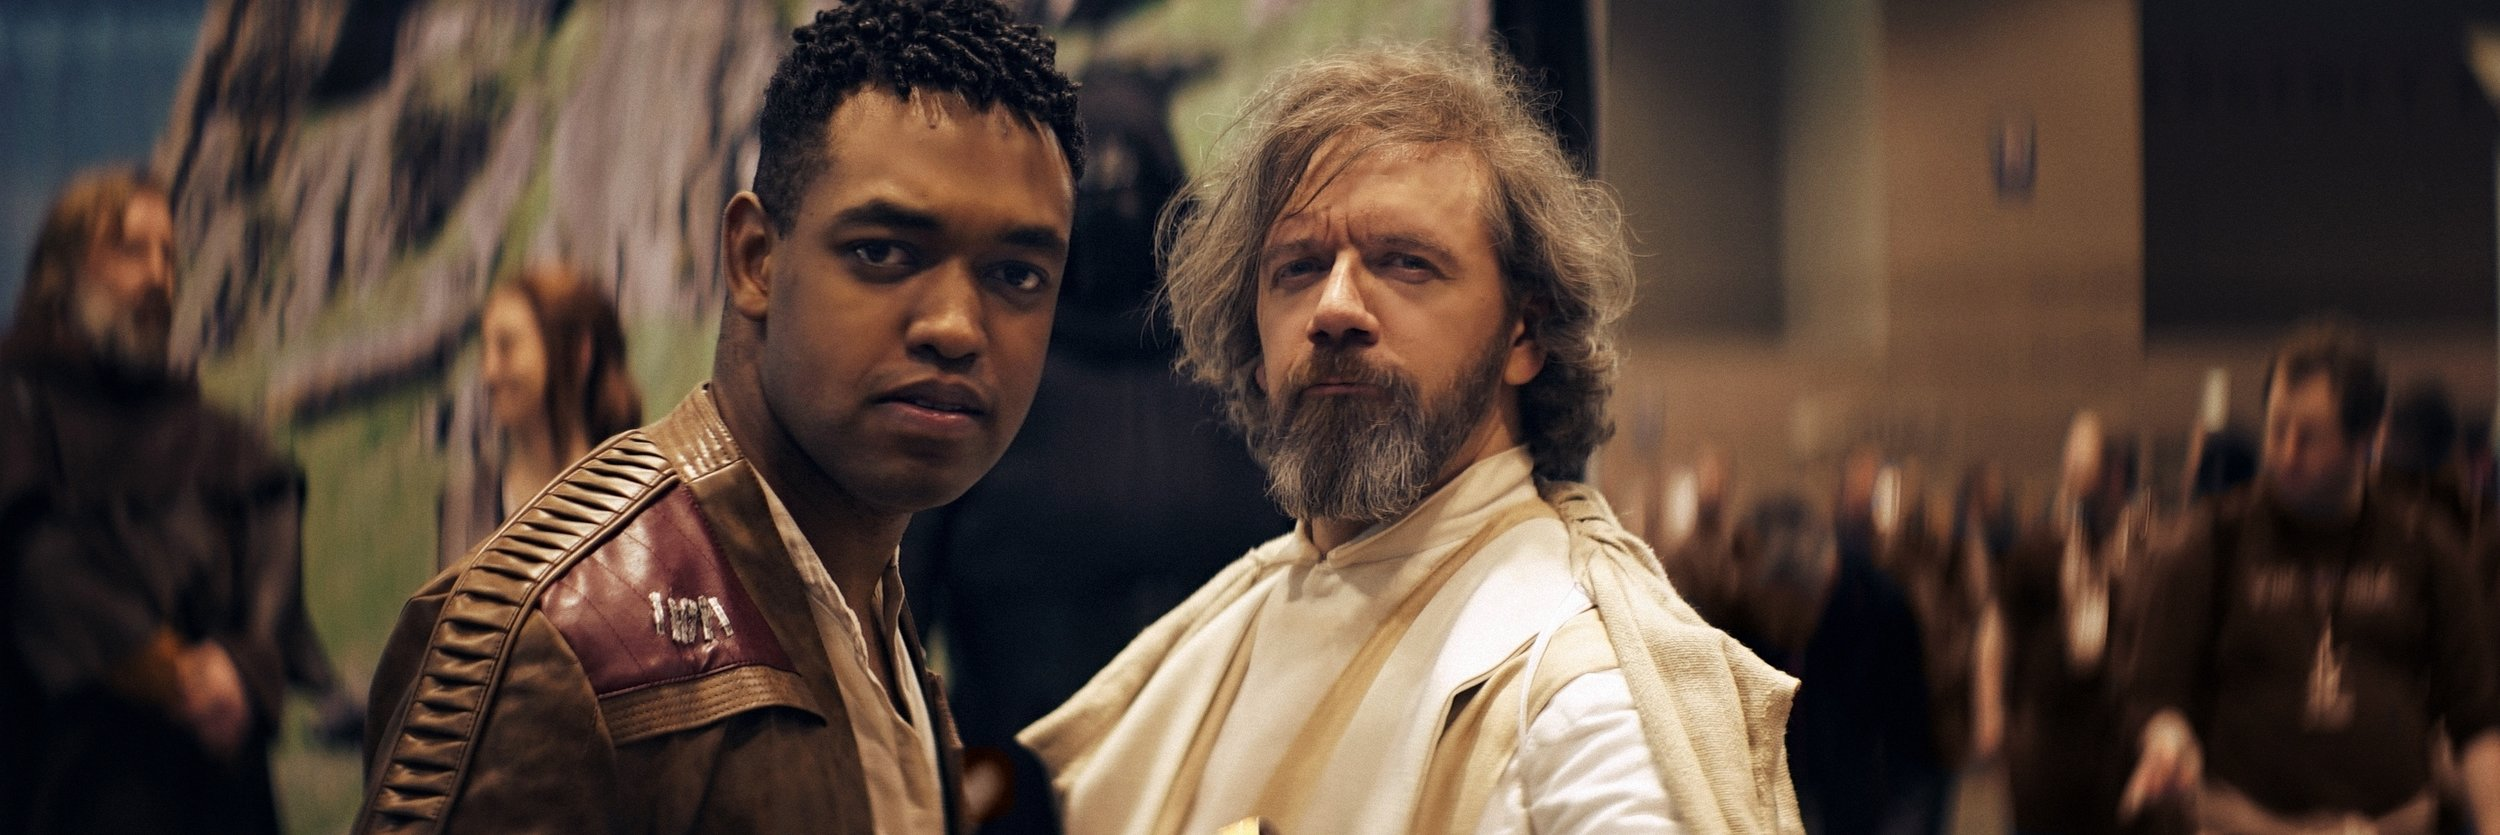 Lomo 75mm Anamorphic Lens | Star Wars Celebration Chicago - SWCC | Finn and Luke Skywalker join forces for this pic. - Photo by: Keith Nickoson